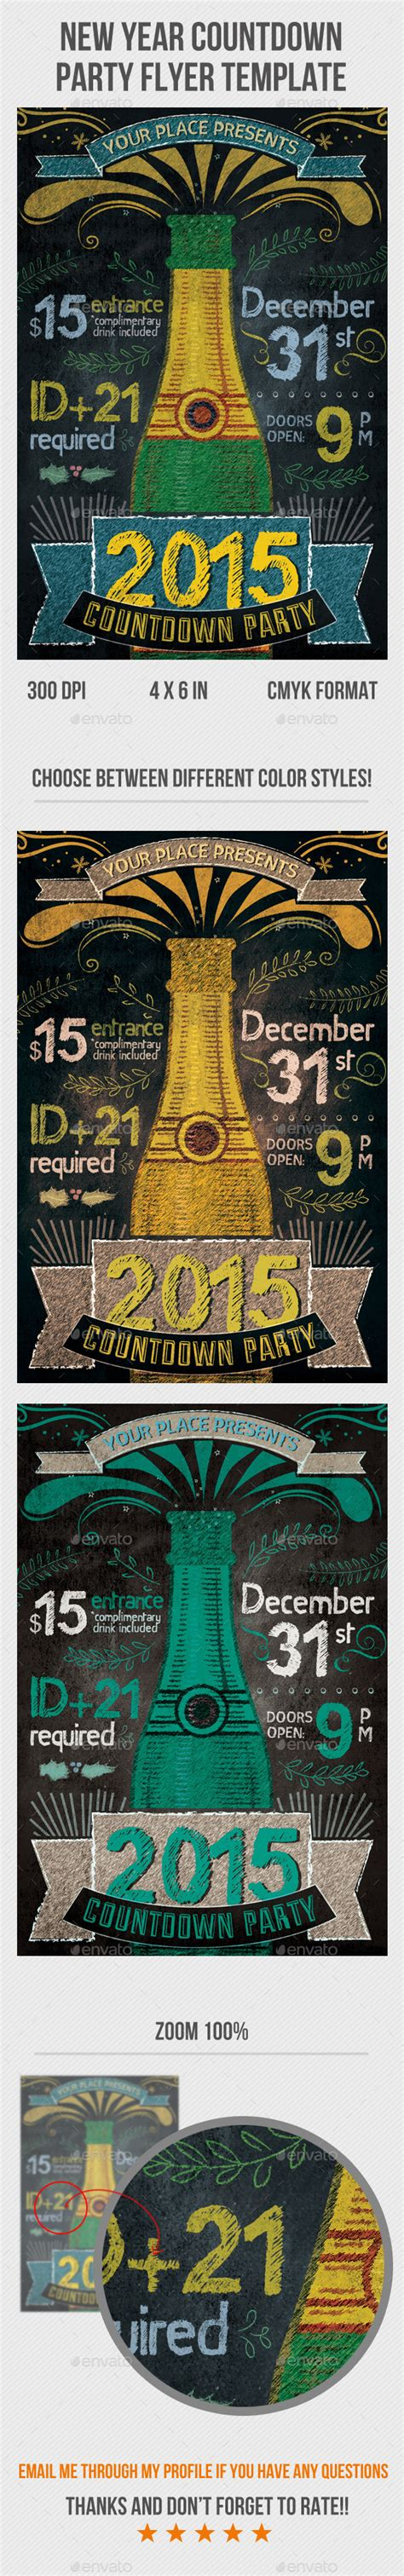 New Year Countdown Flyer Template Graphicriver Countdown Poster Template